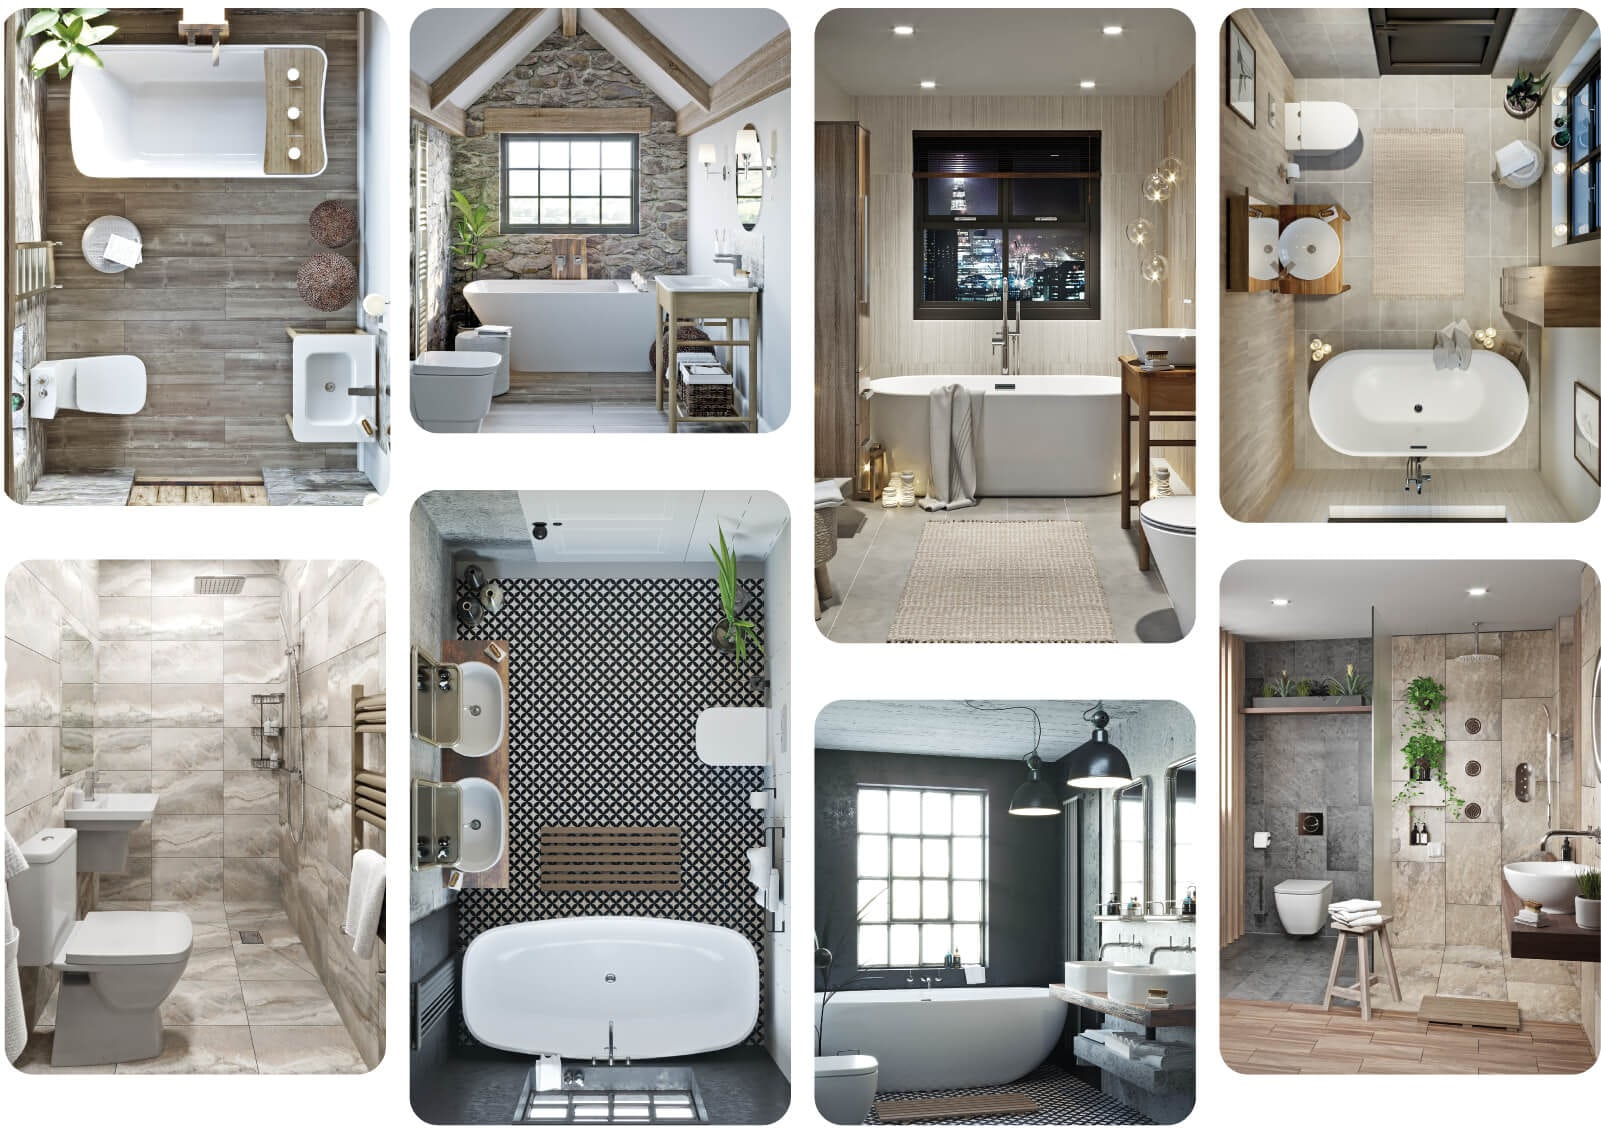 Nice small bathroom inspiration